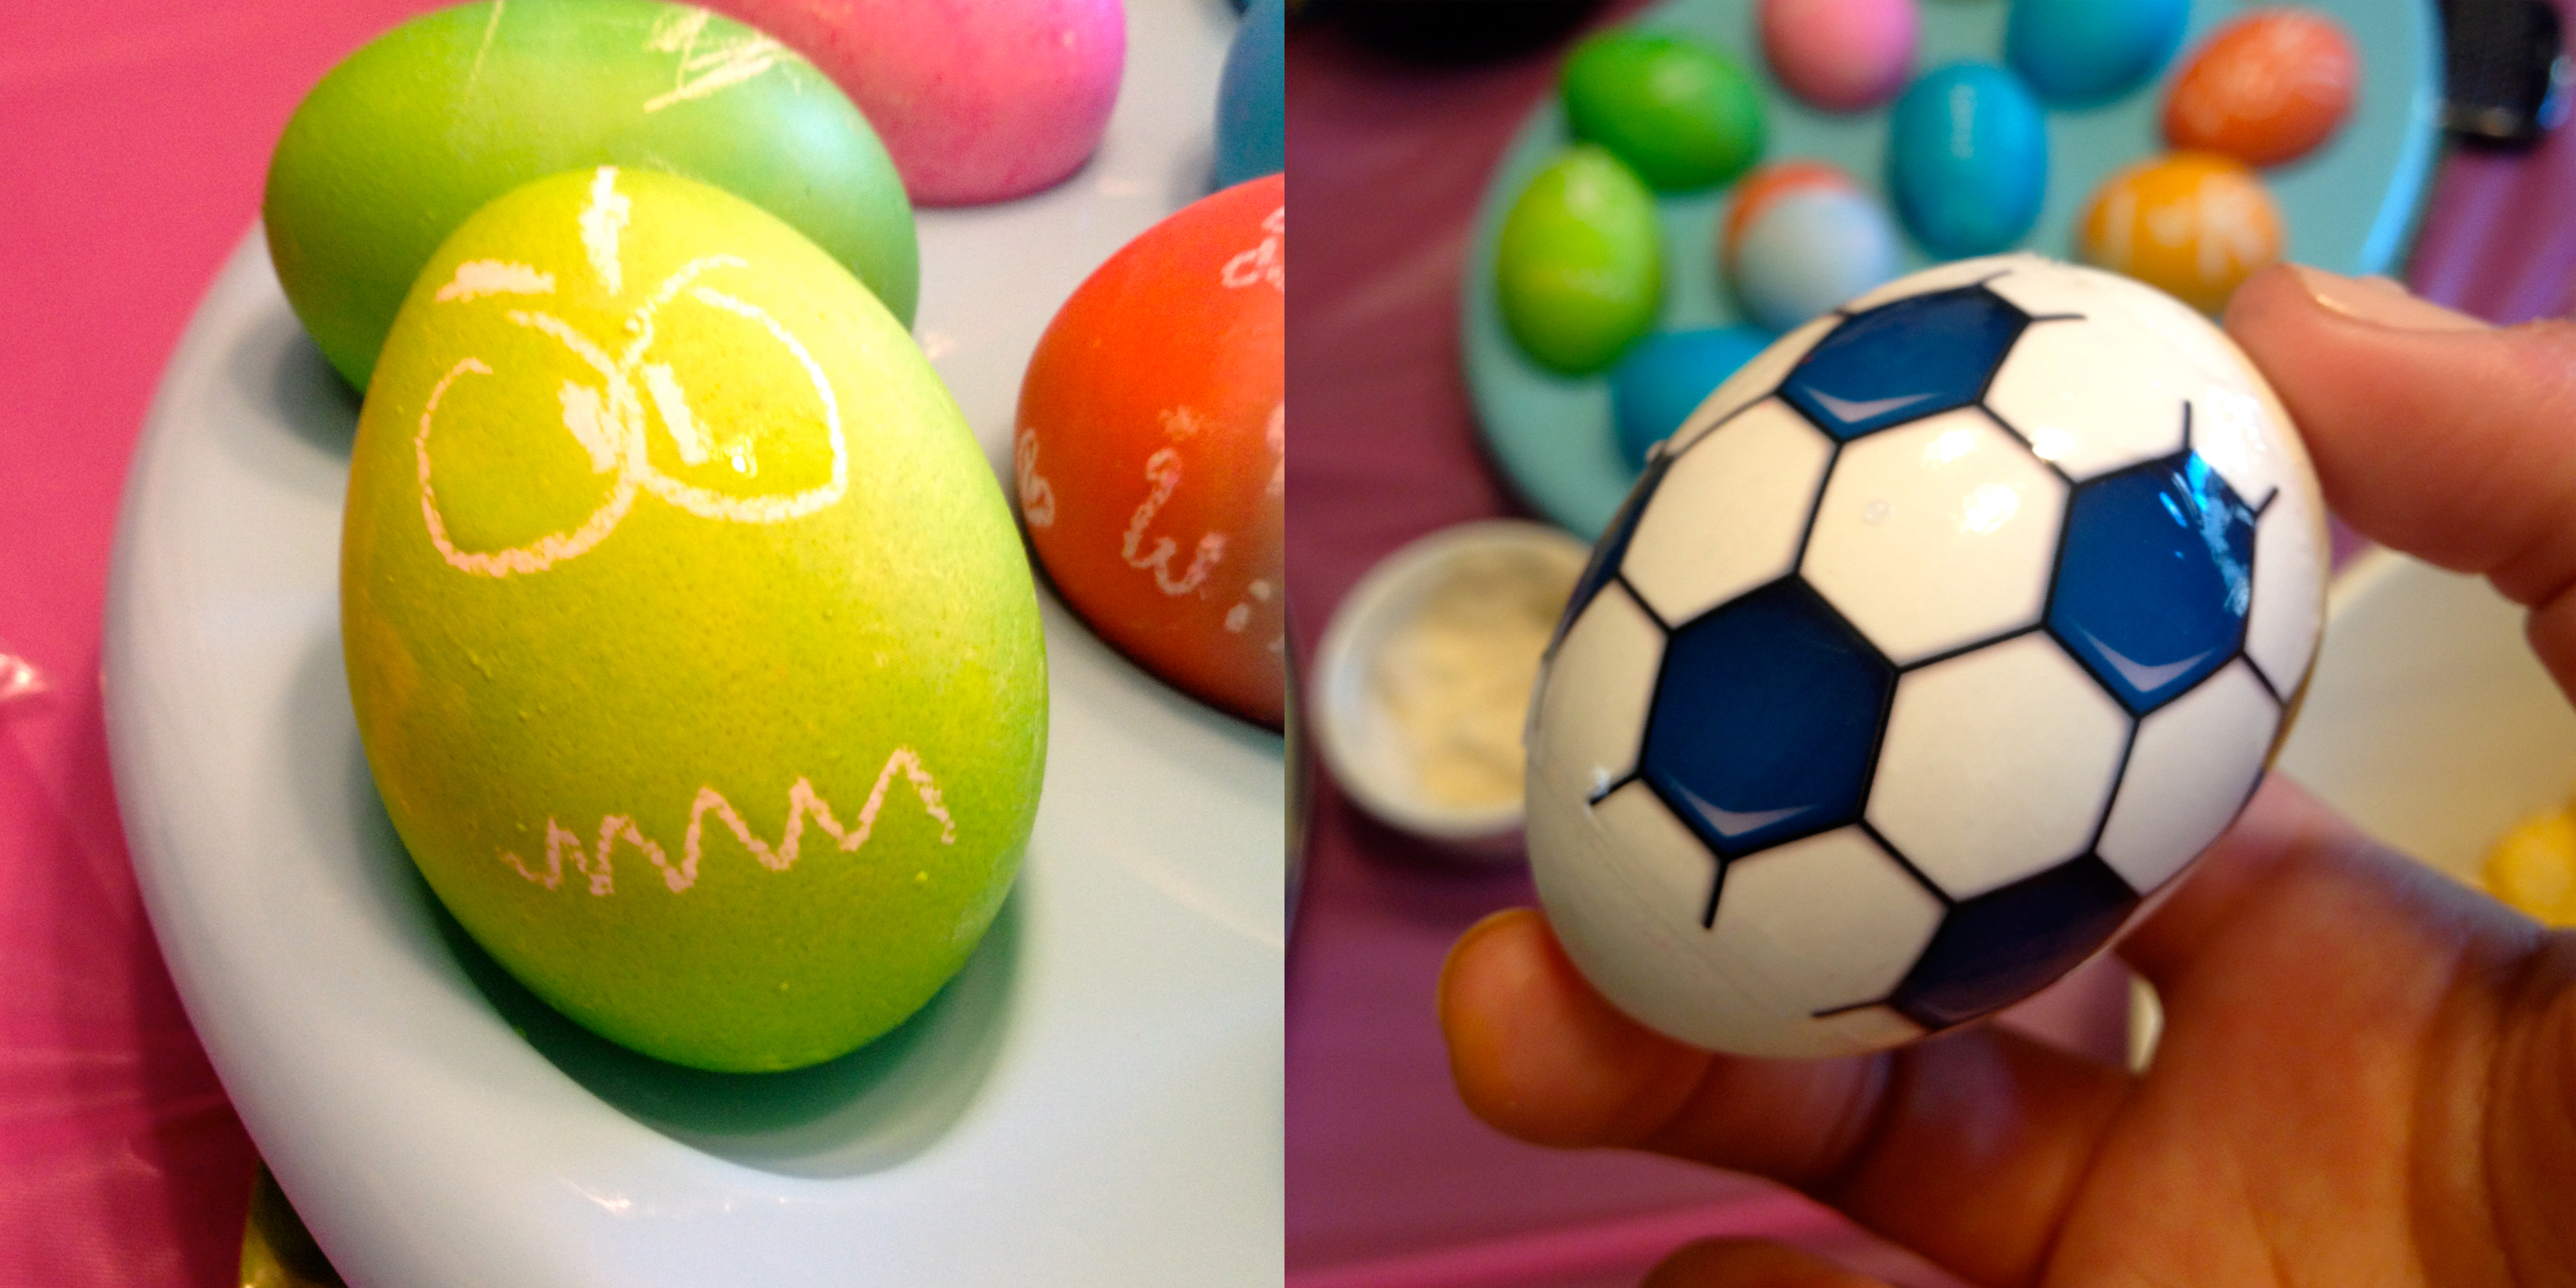 Why paint eggs